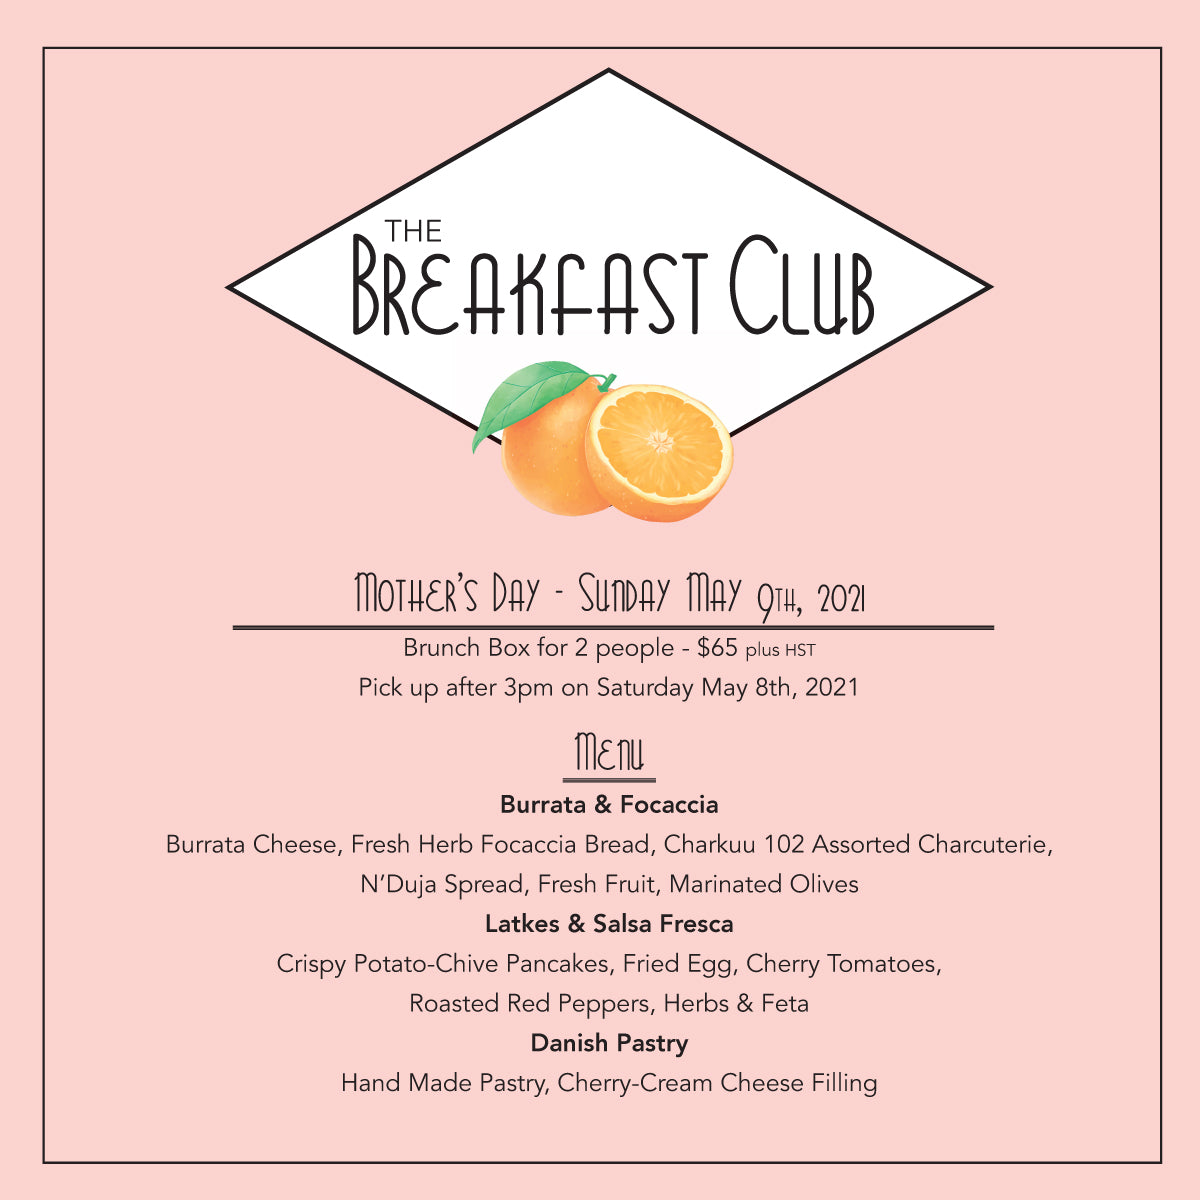 Breakfast Club - Mother's Day Edition